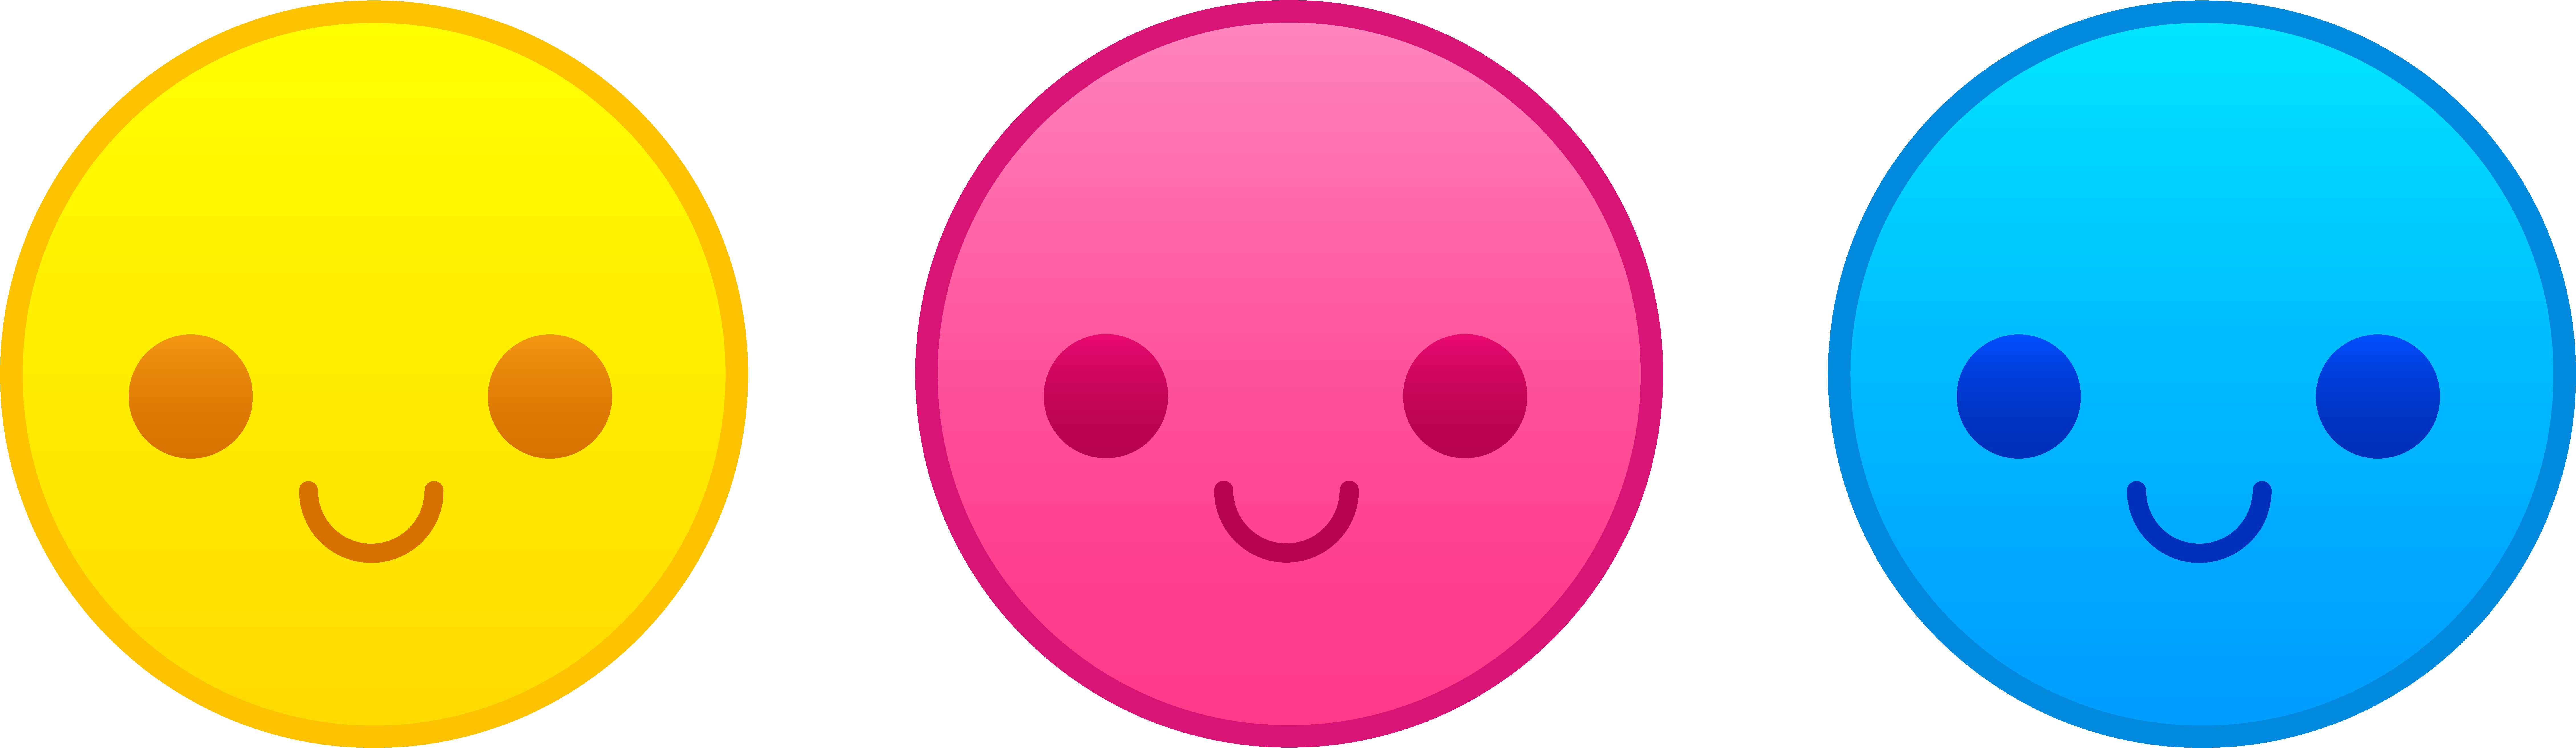 Png images of smiley face. Cute clipart